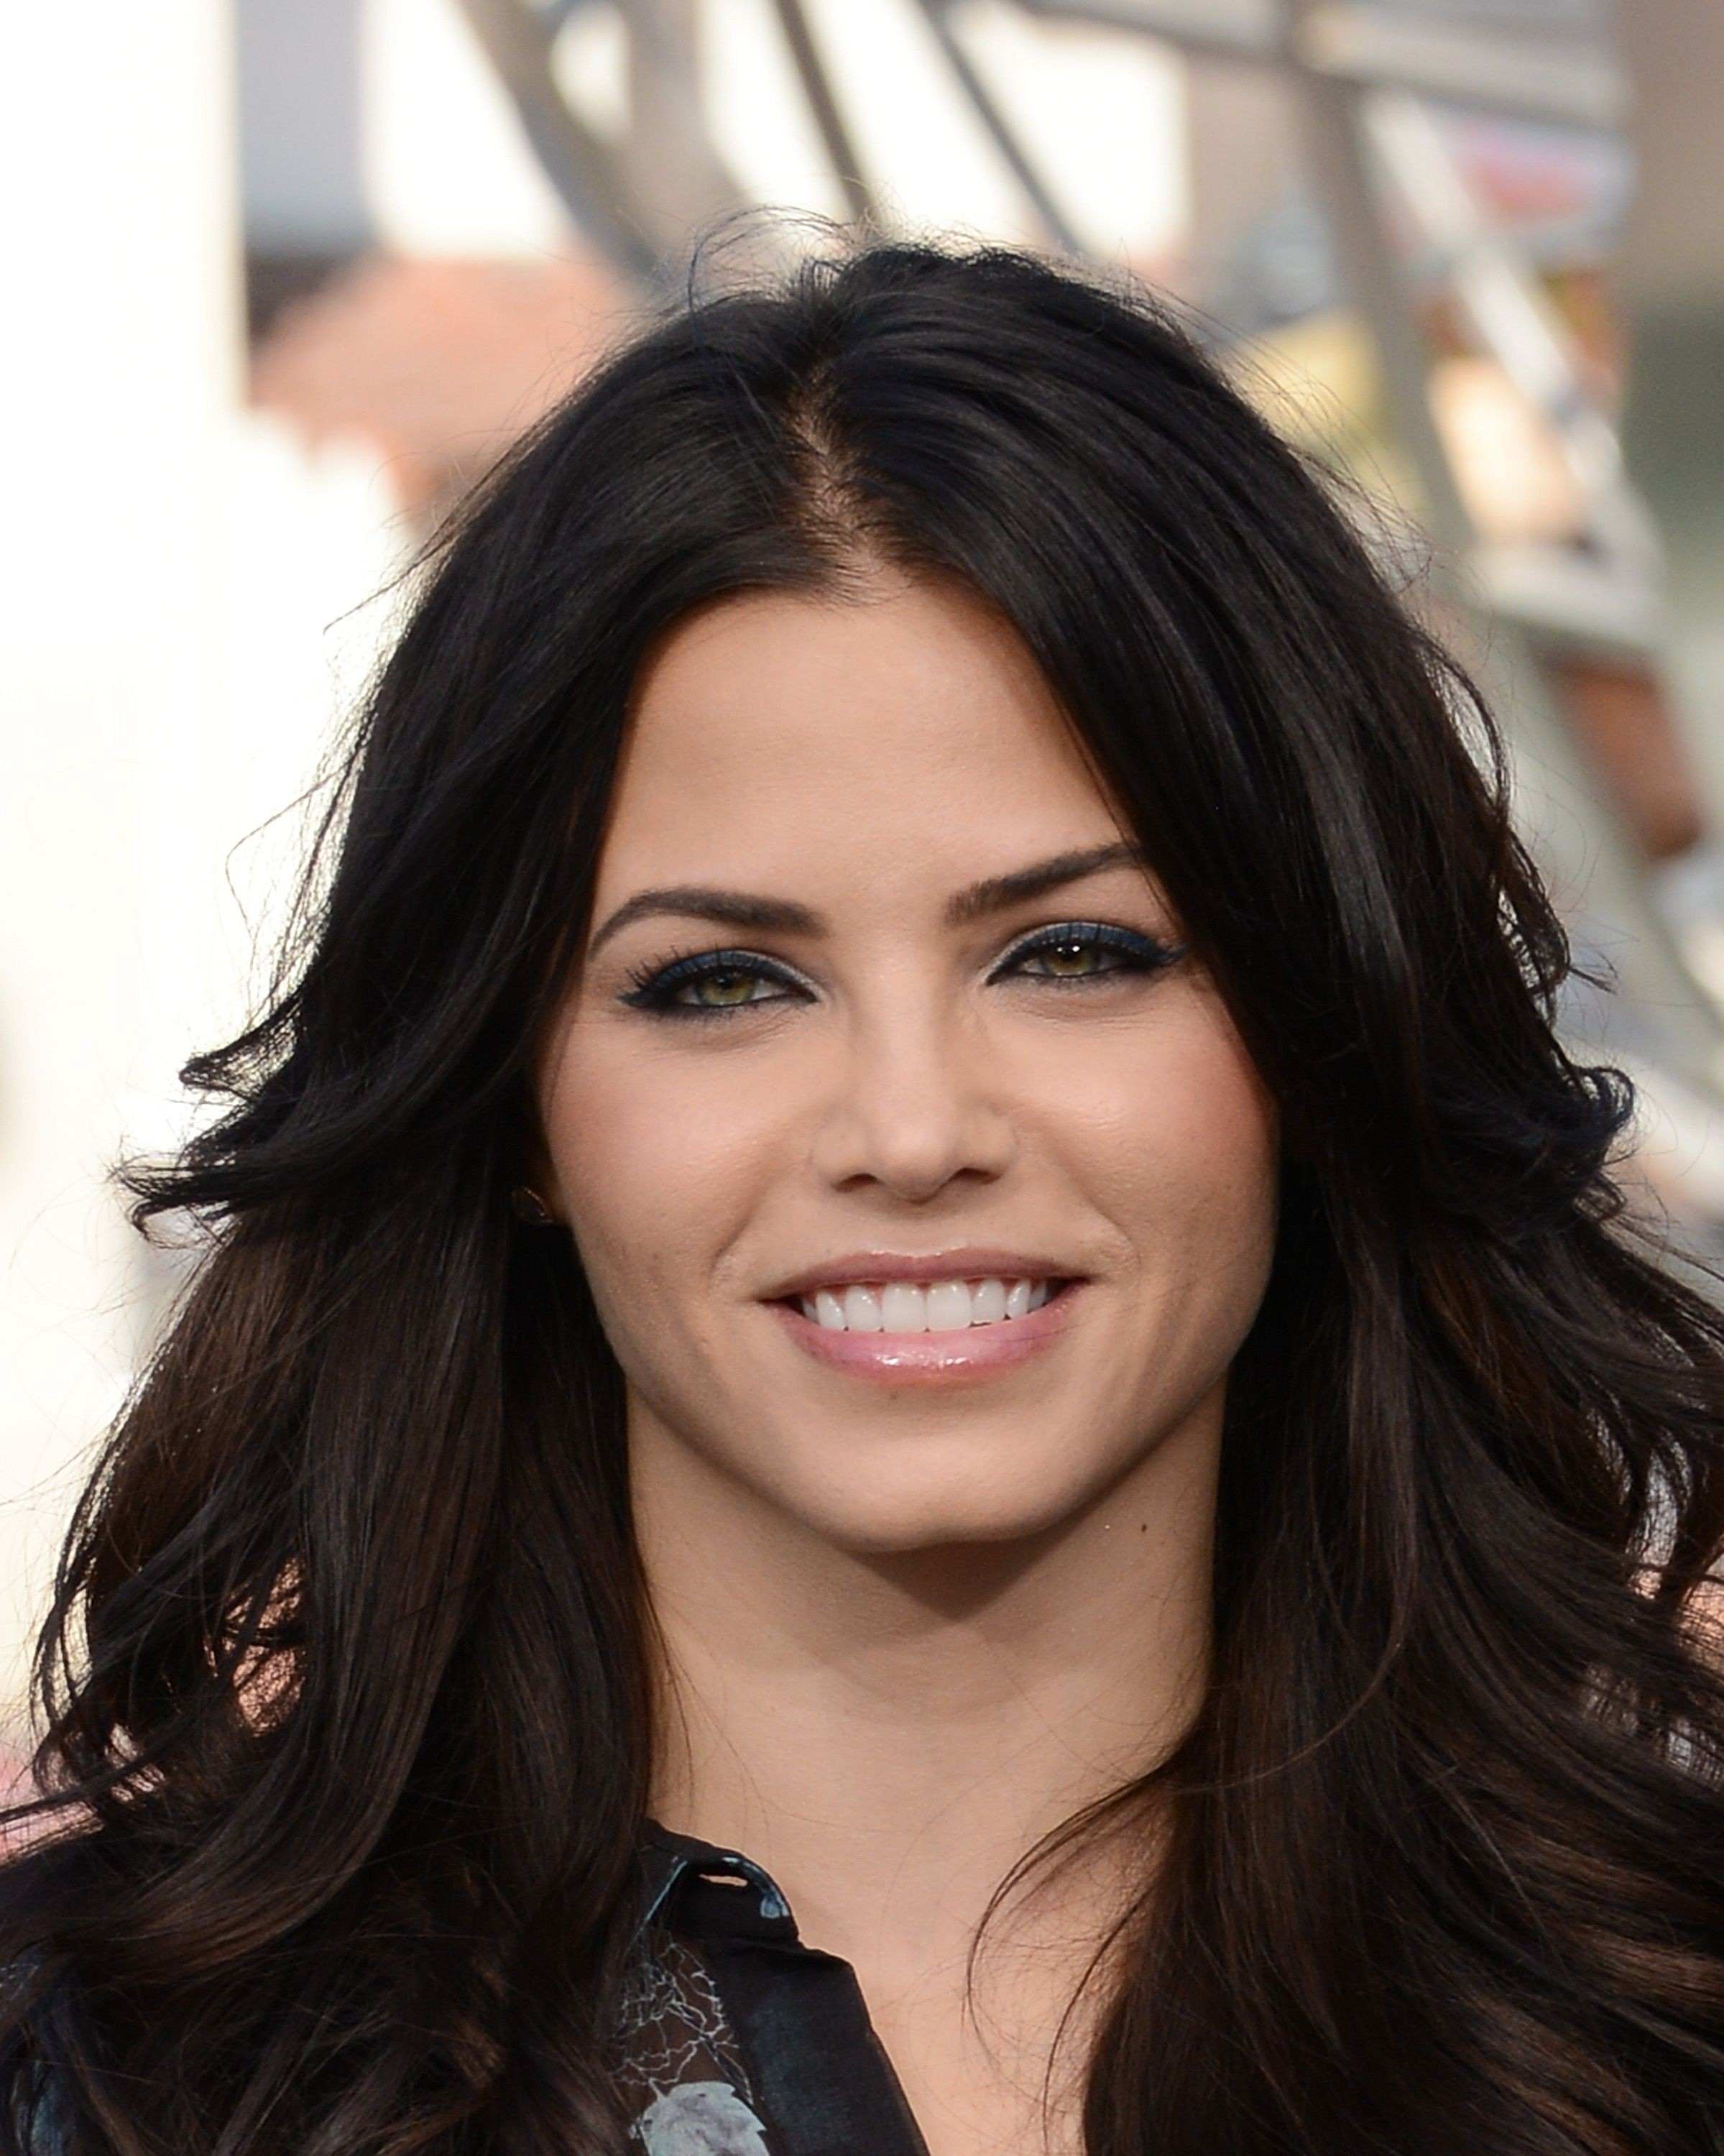 Celebrity Hair Inspiration 10 Brunette Colors For Your Next Trip To The Salon Hair Color For Brown Eyes Dark Brunette Hair Celebrity Hair Inspiration